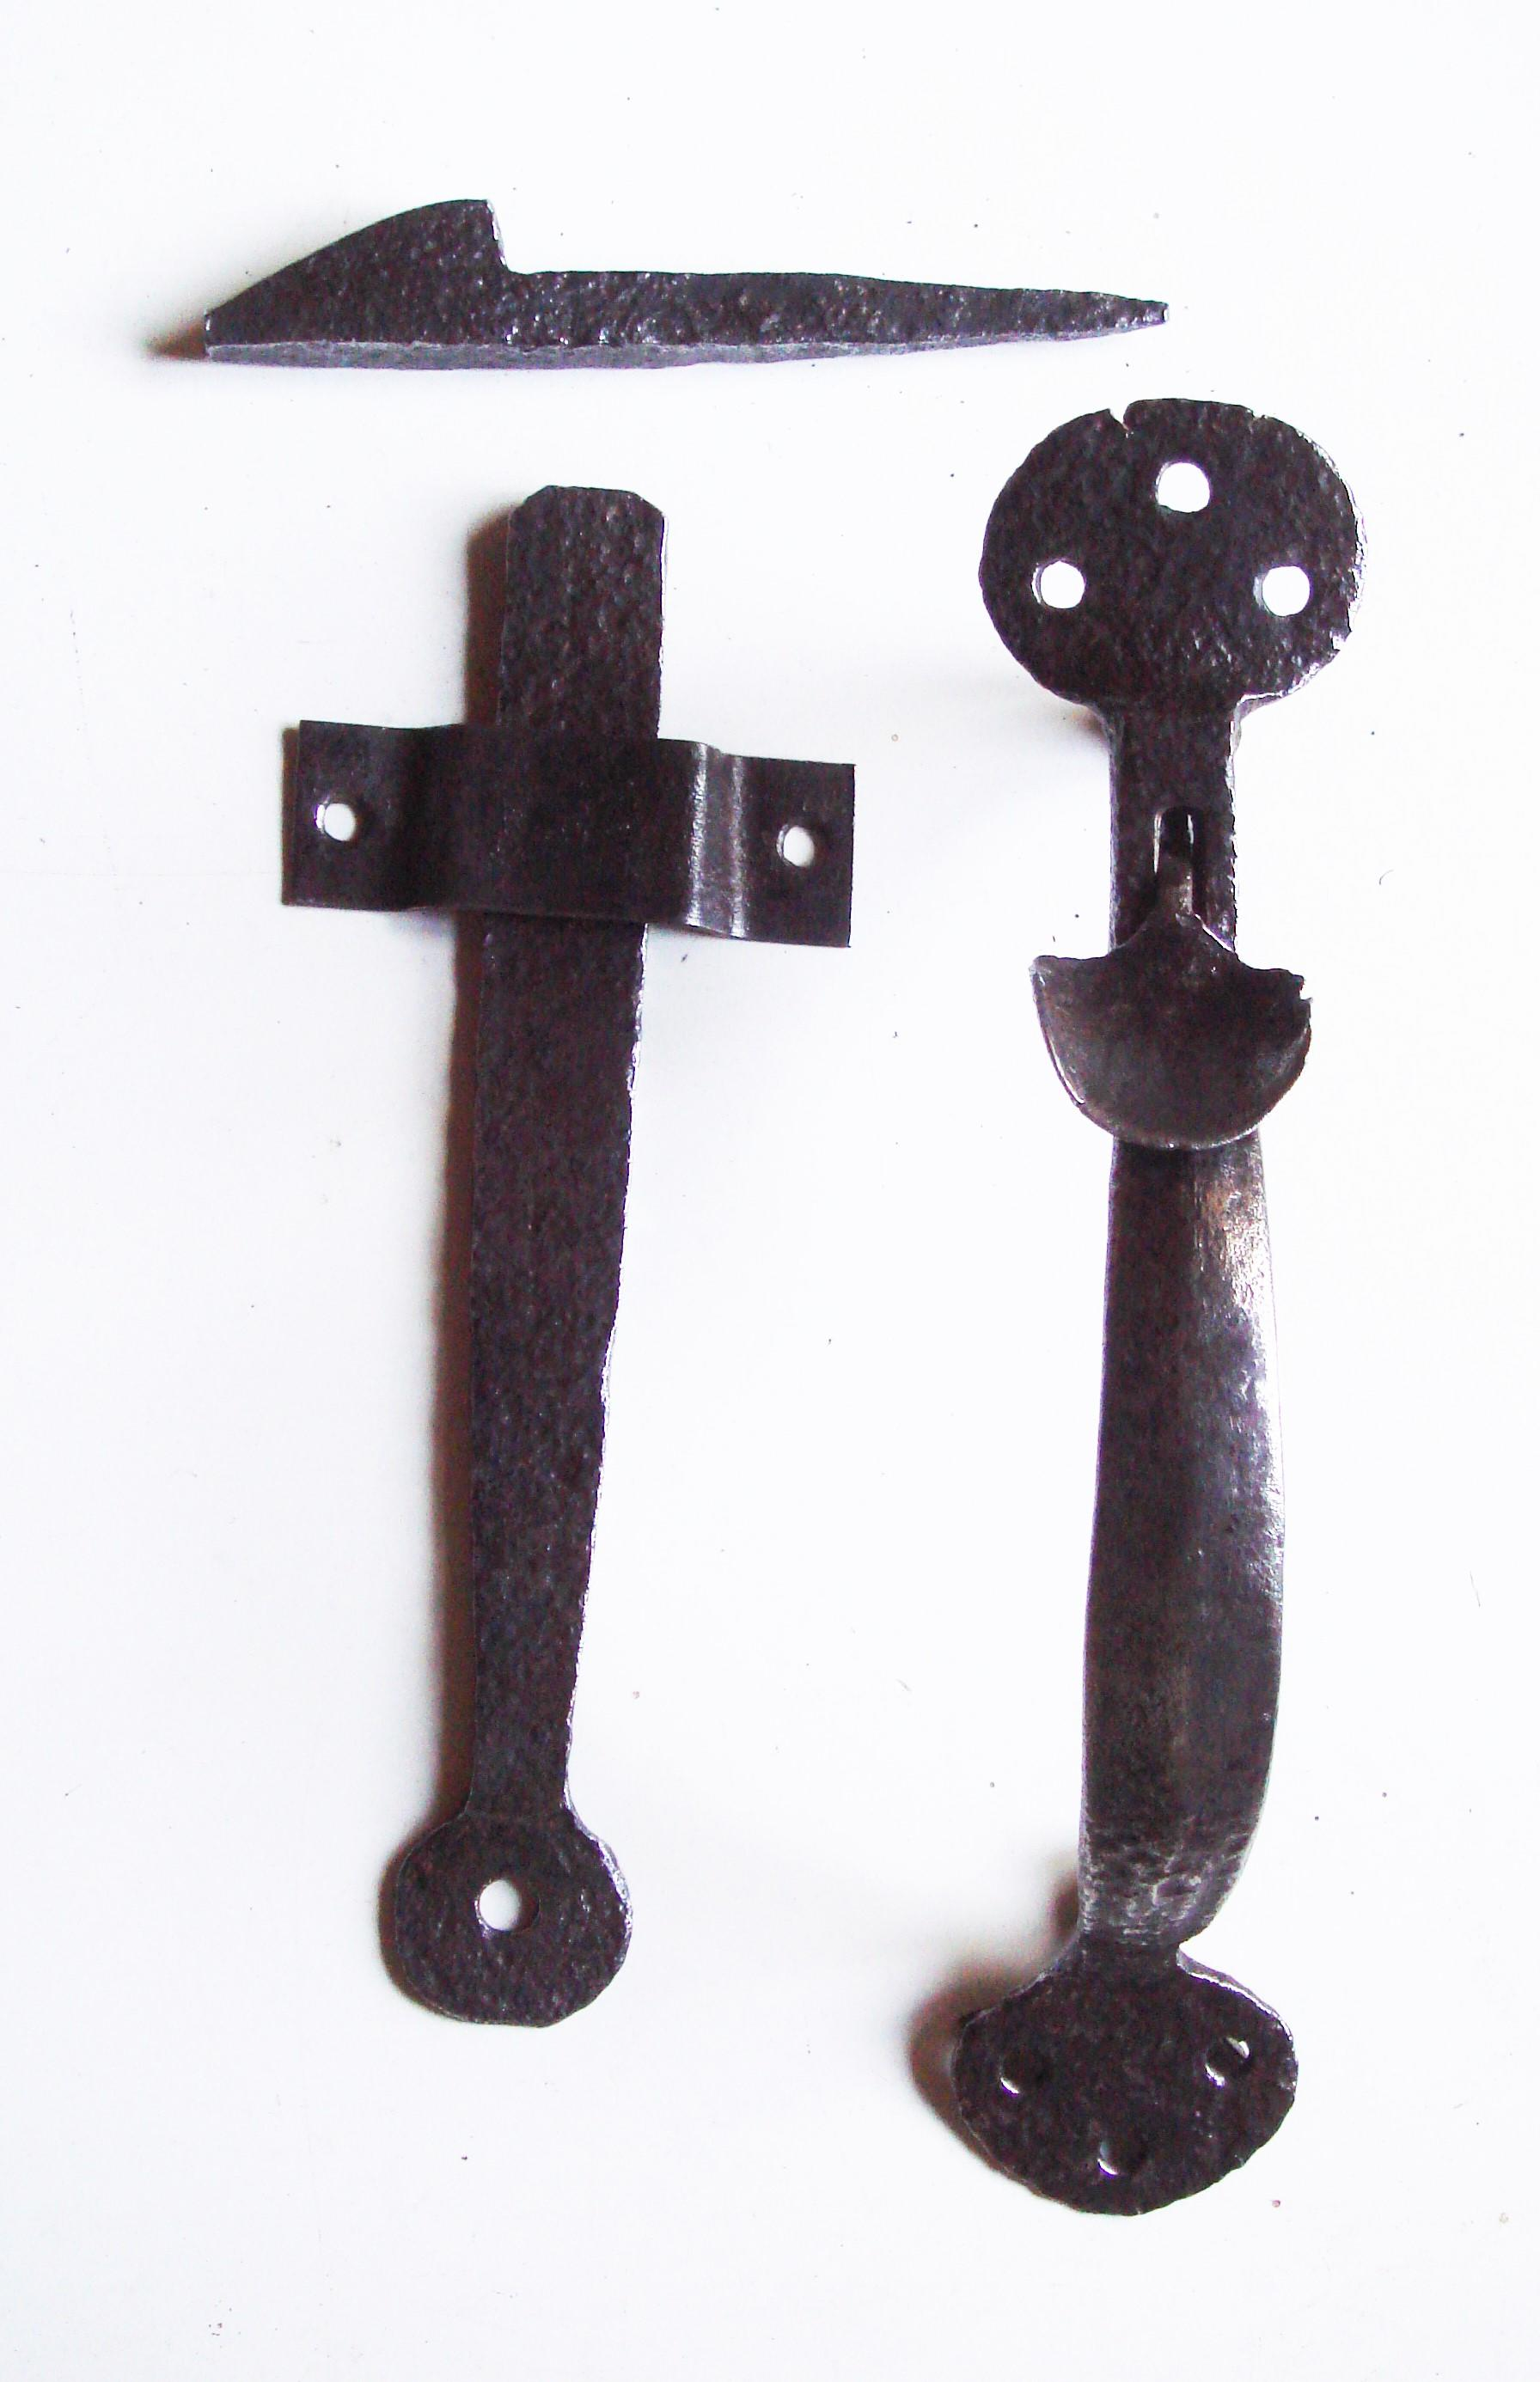 19th Century iron door latch